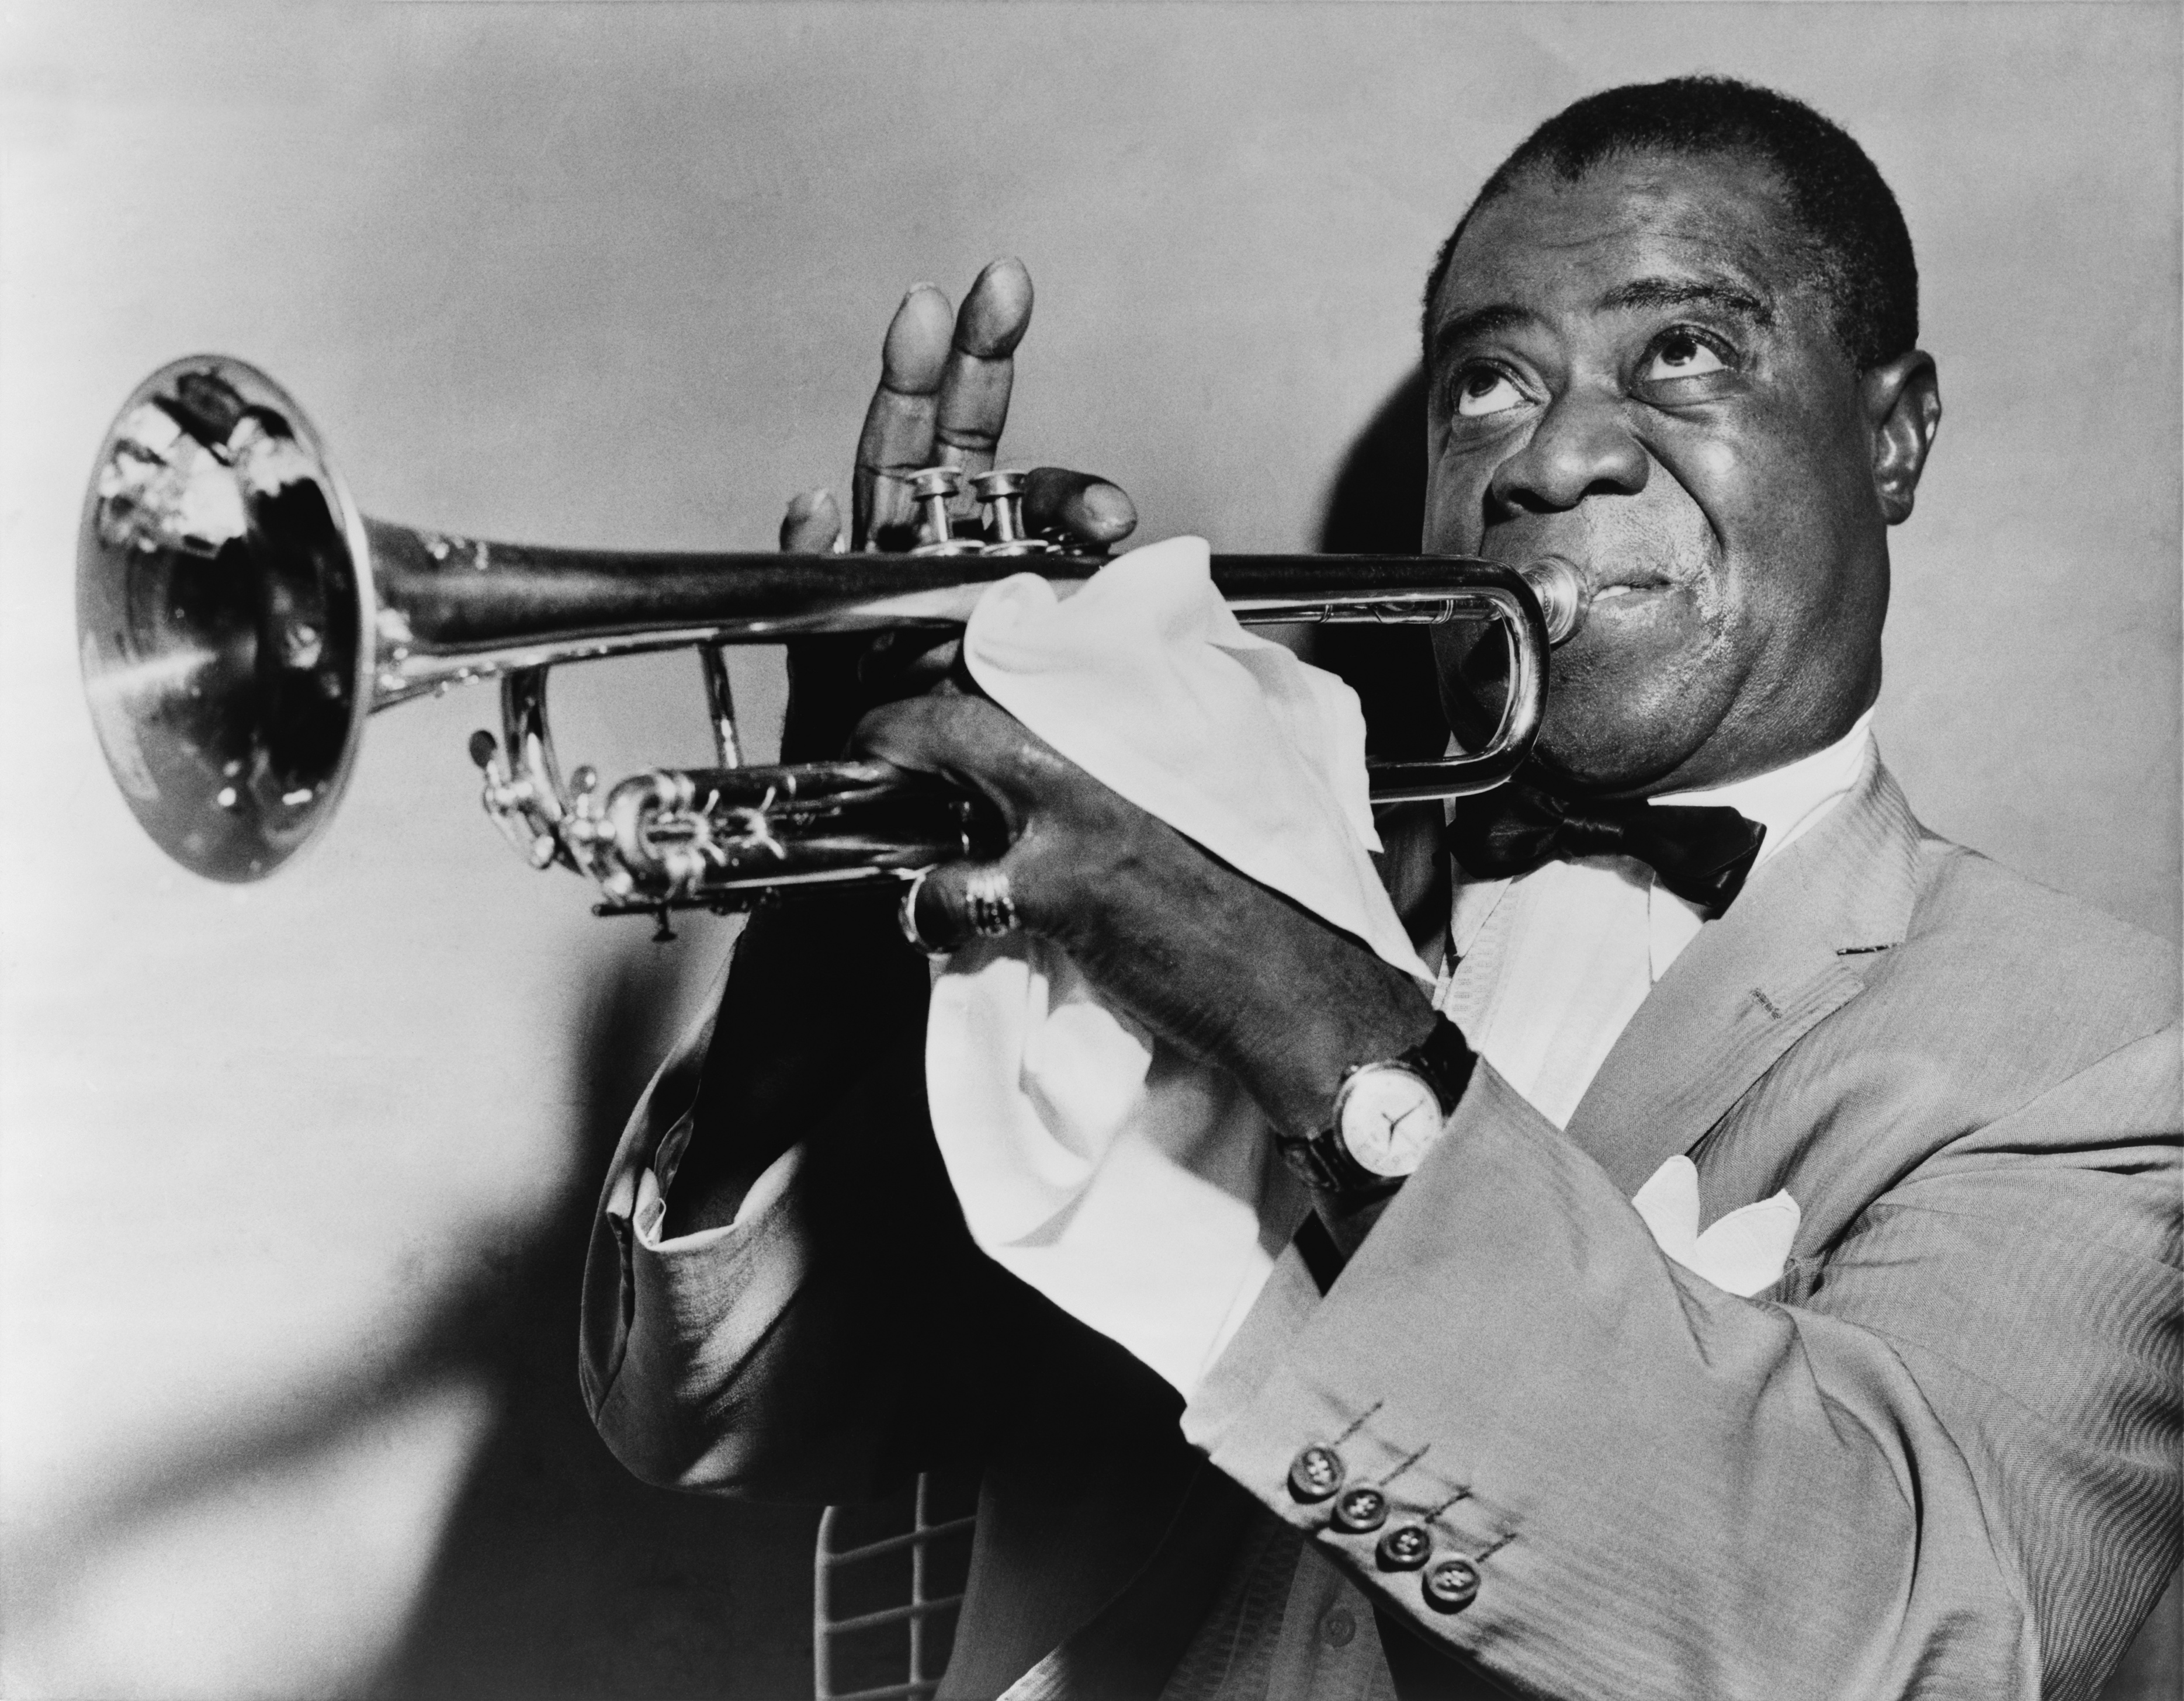 Depiction of Louis Armstrong